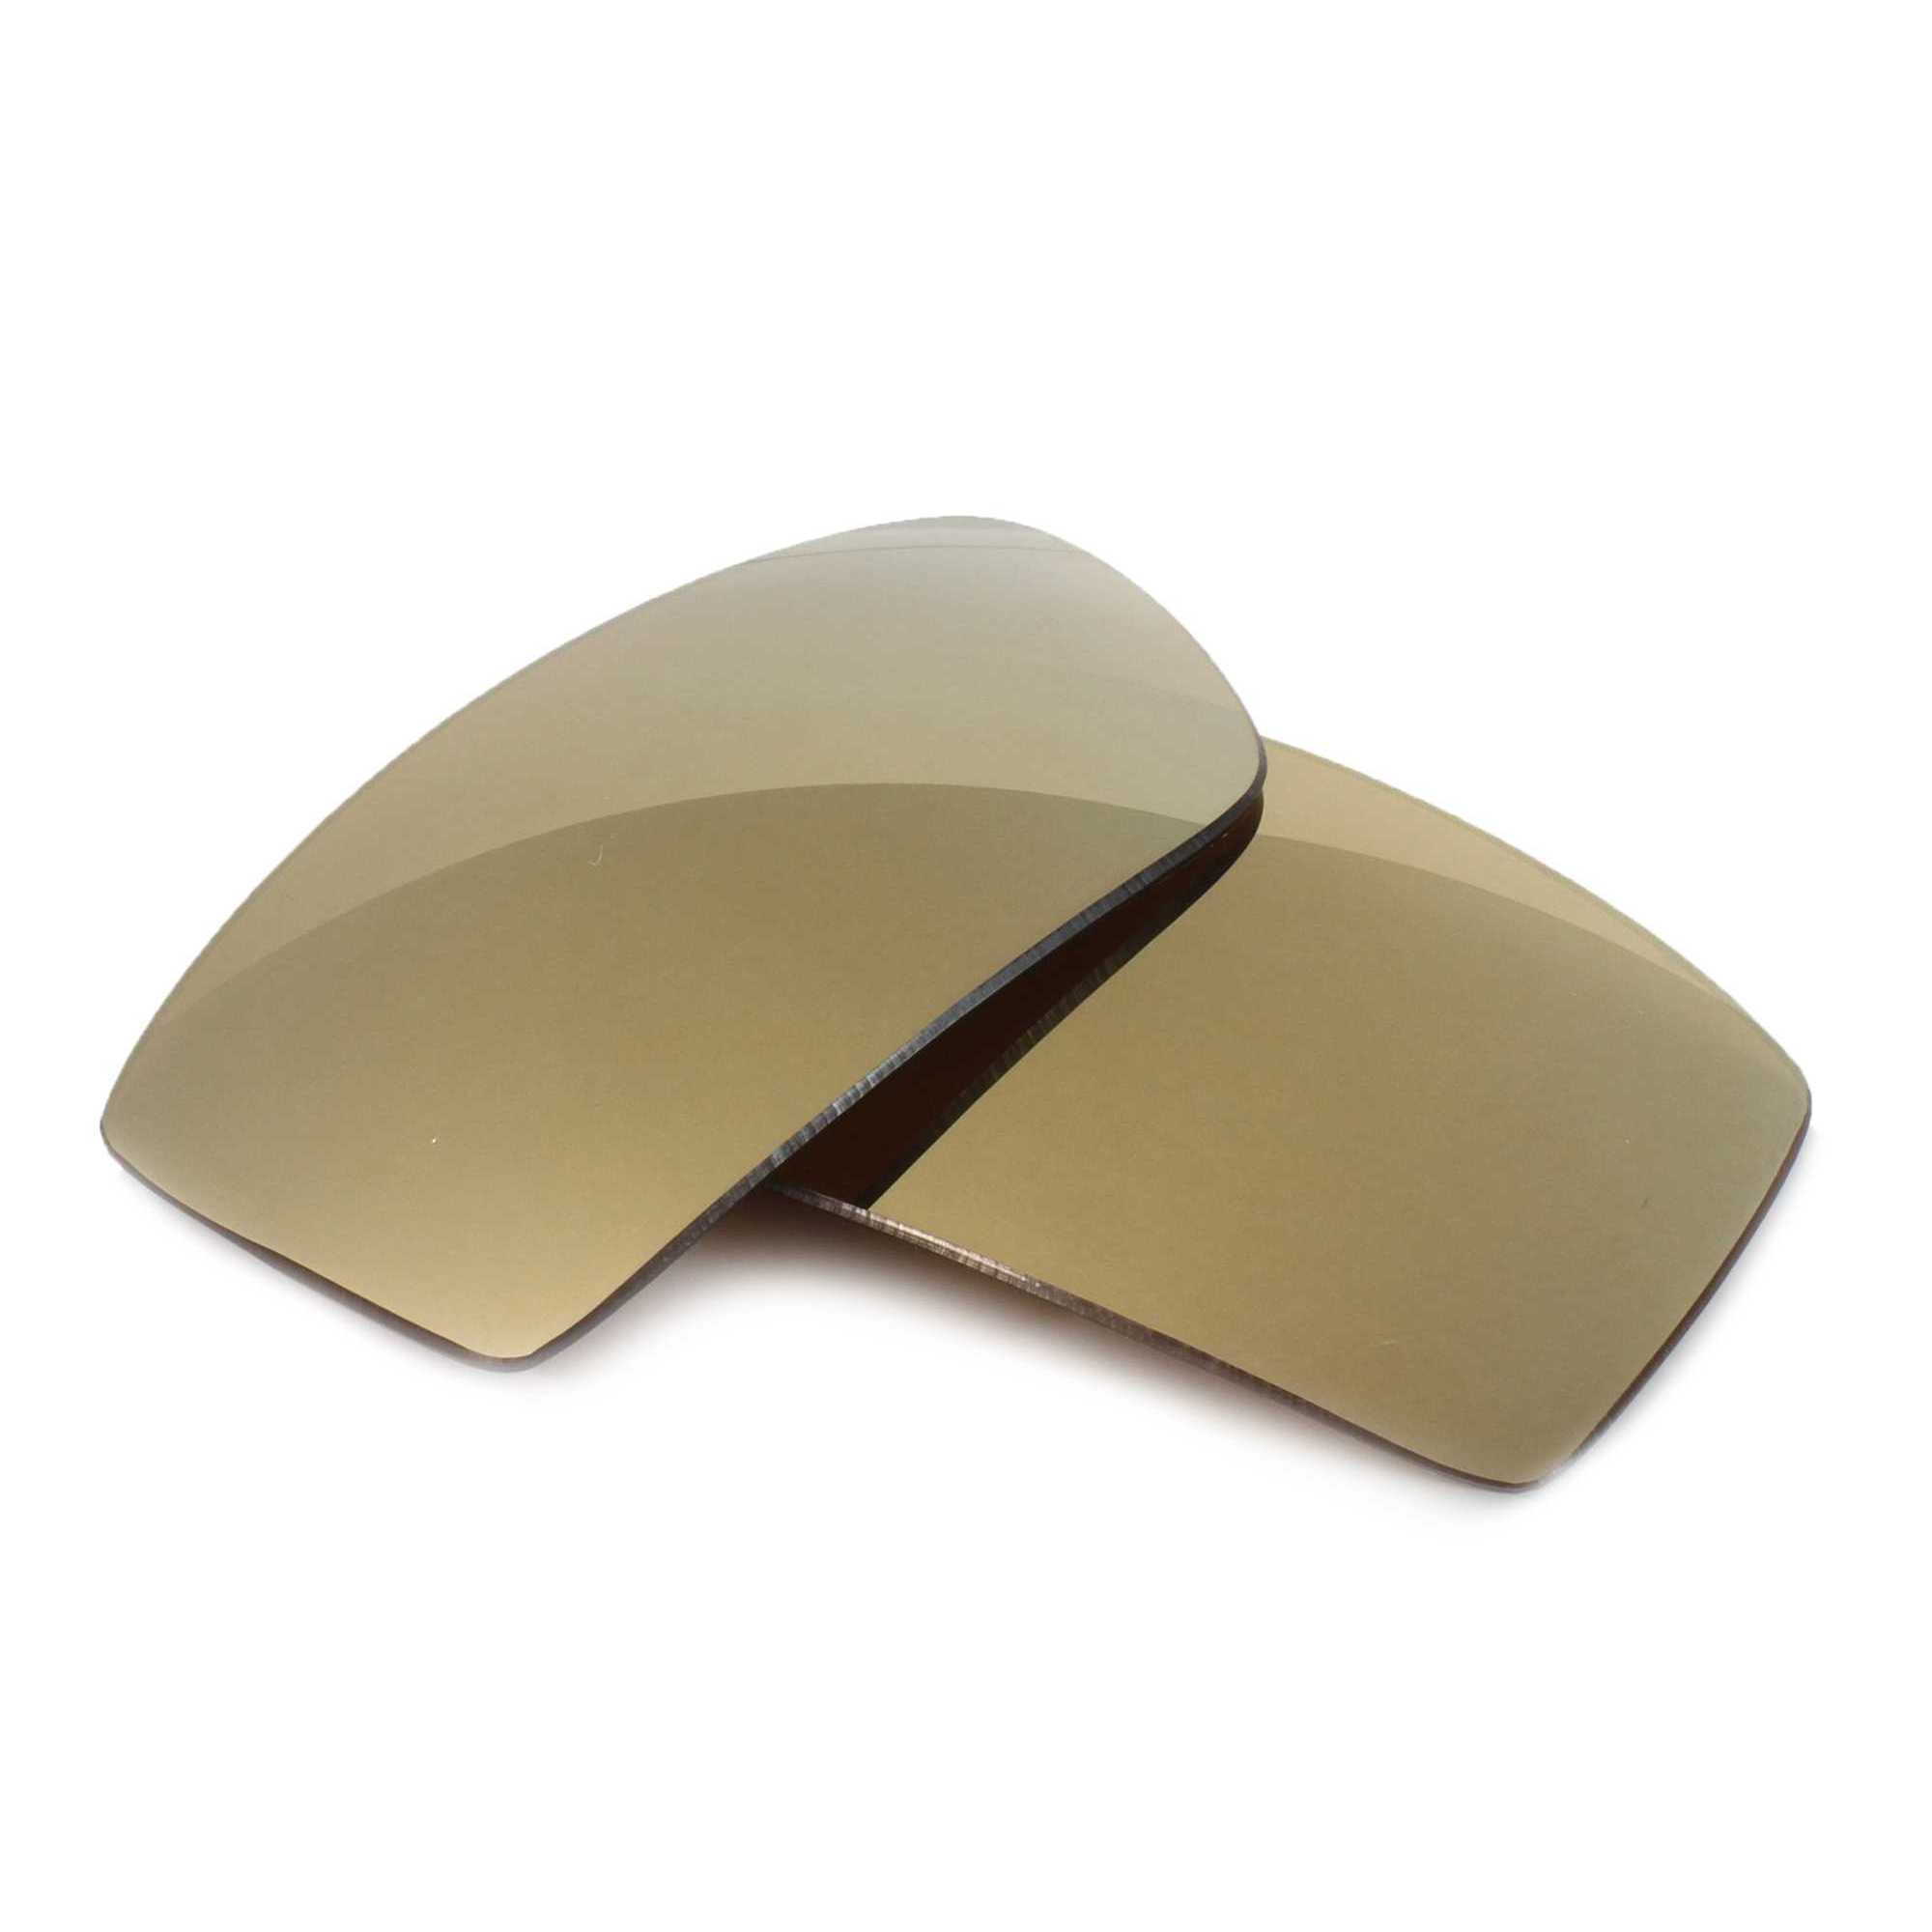 FUSE Lenses for Nike GDO Box M Bronze Mirror Tint Lenses